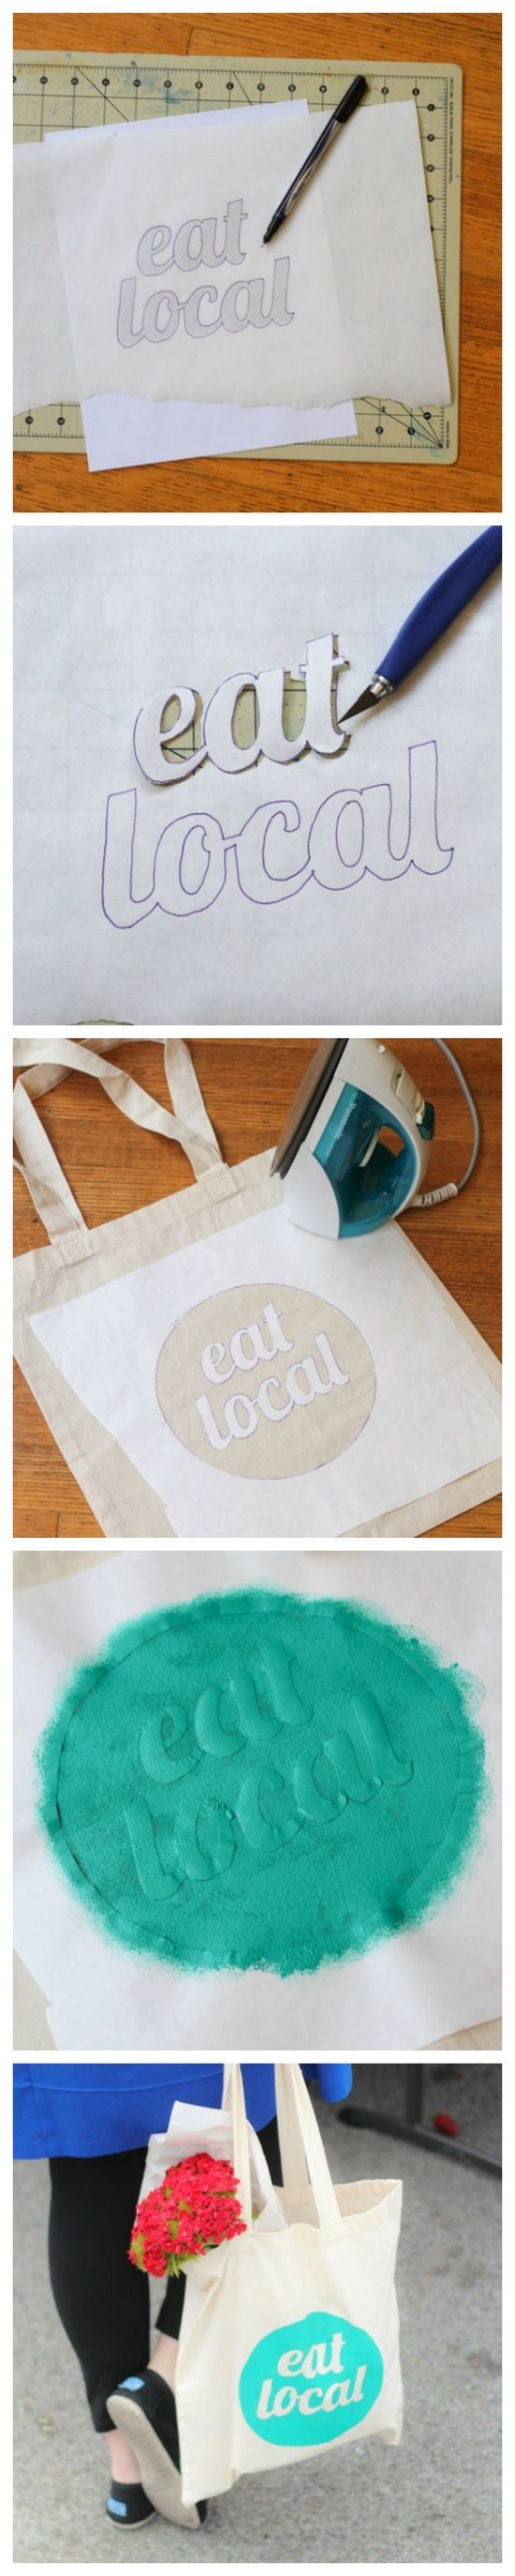 DIY ~ Freezer Paper Stencil, I'd love to make some of these to sell at the local farmer's market!